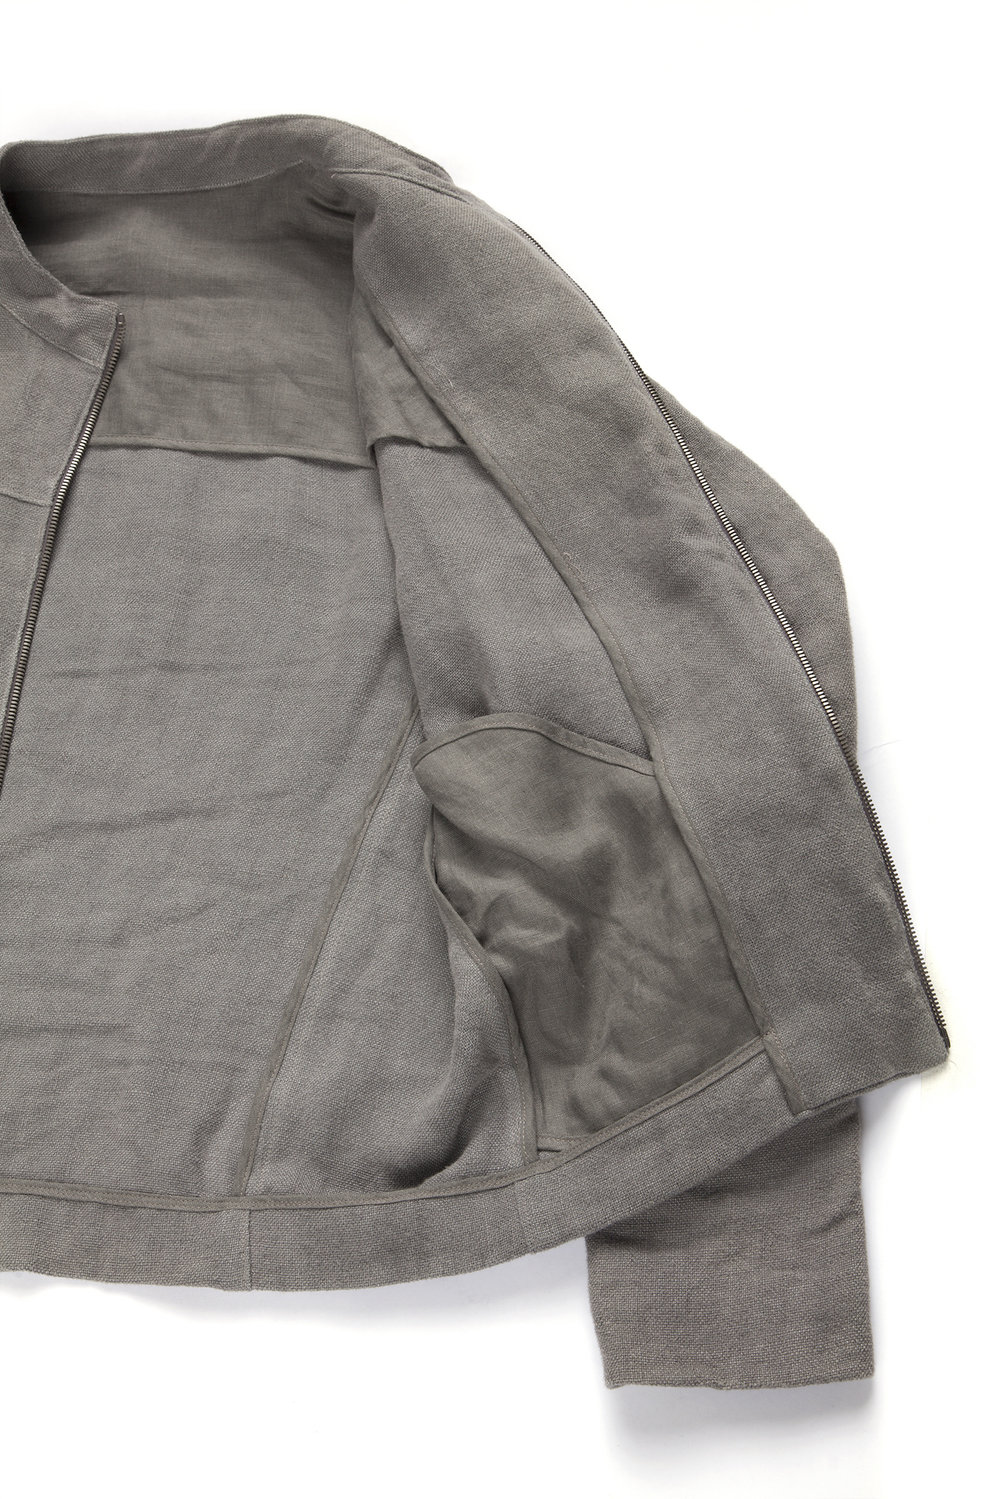 greylinenjacket4(small).jpg